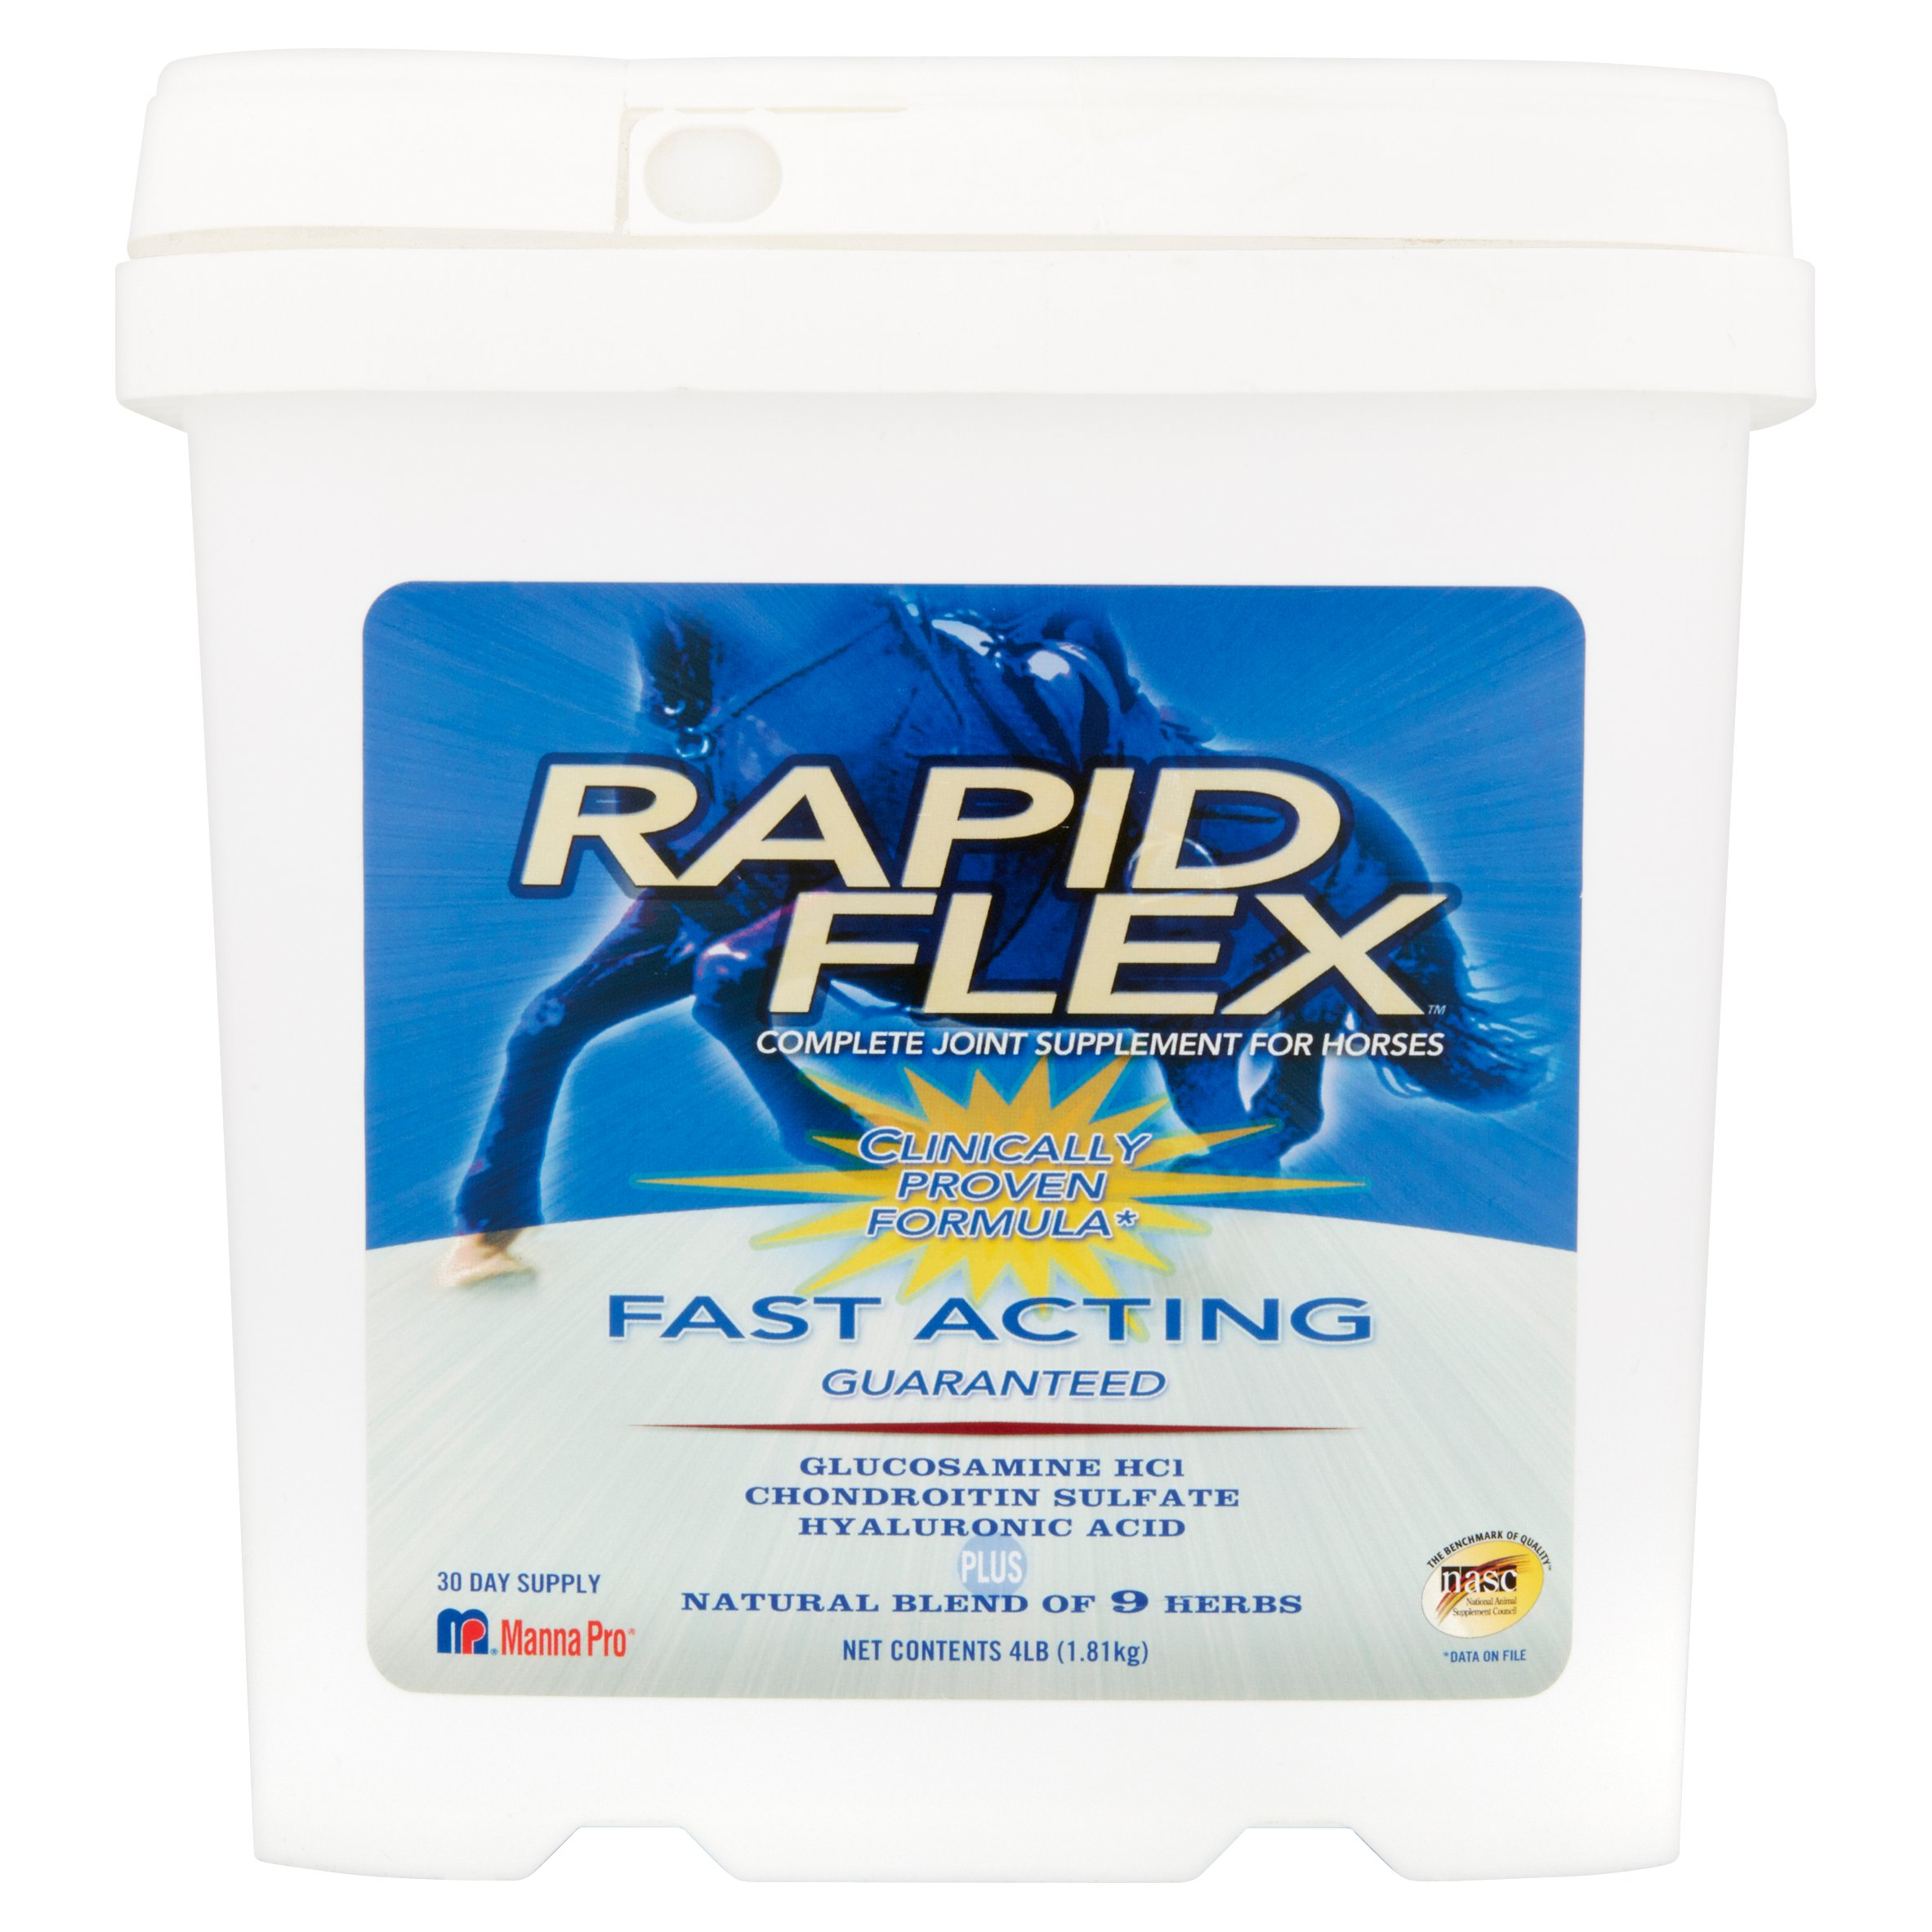 Manna Pro Rapid Flex Complete Joint Supplement for Heroes, 4 lb